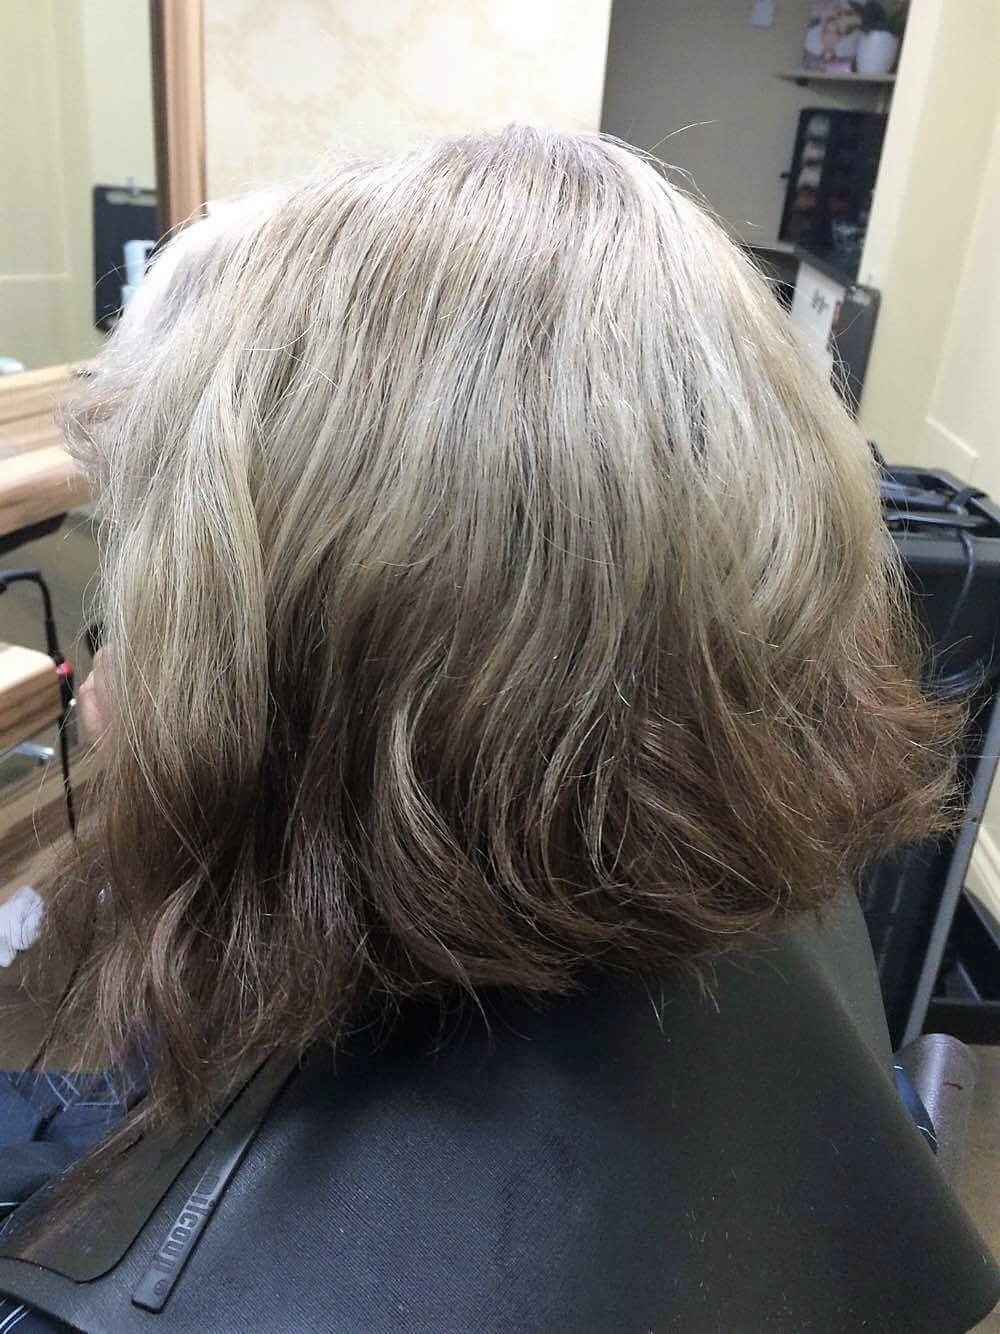 Client wanted complete change. She likes it white at the front to hide the natural grey, cool blonde as a base colour but some darker blended ends to give a contrasting look.